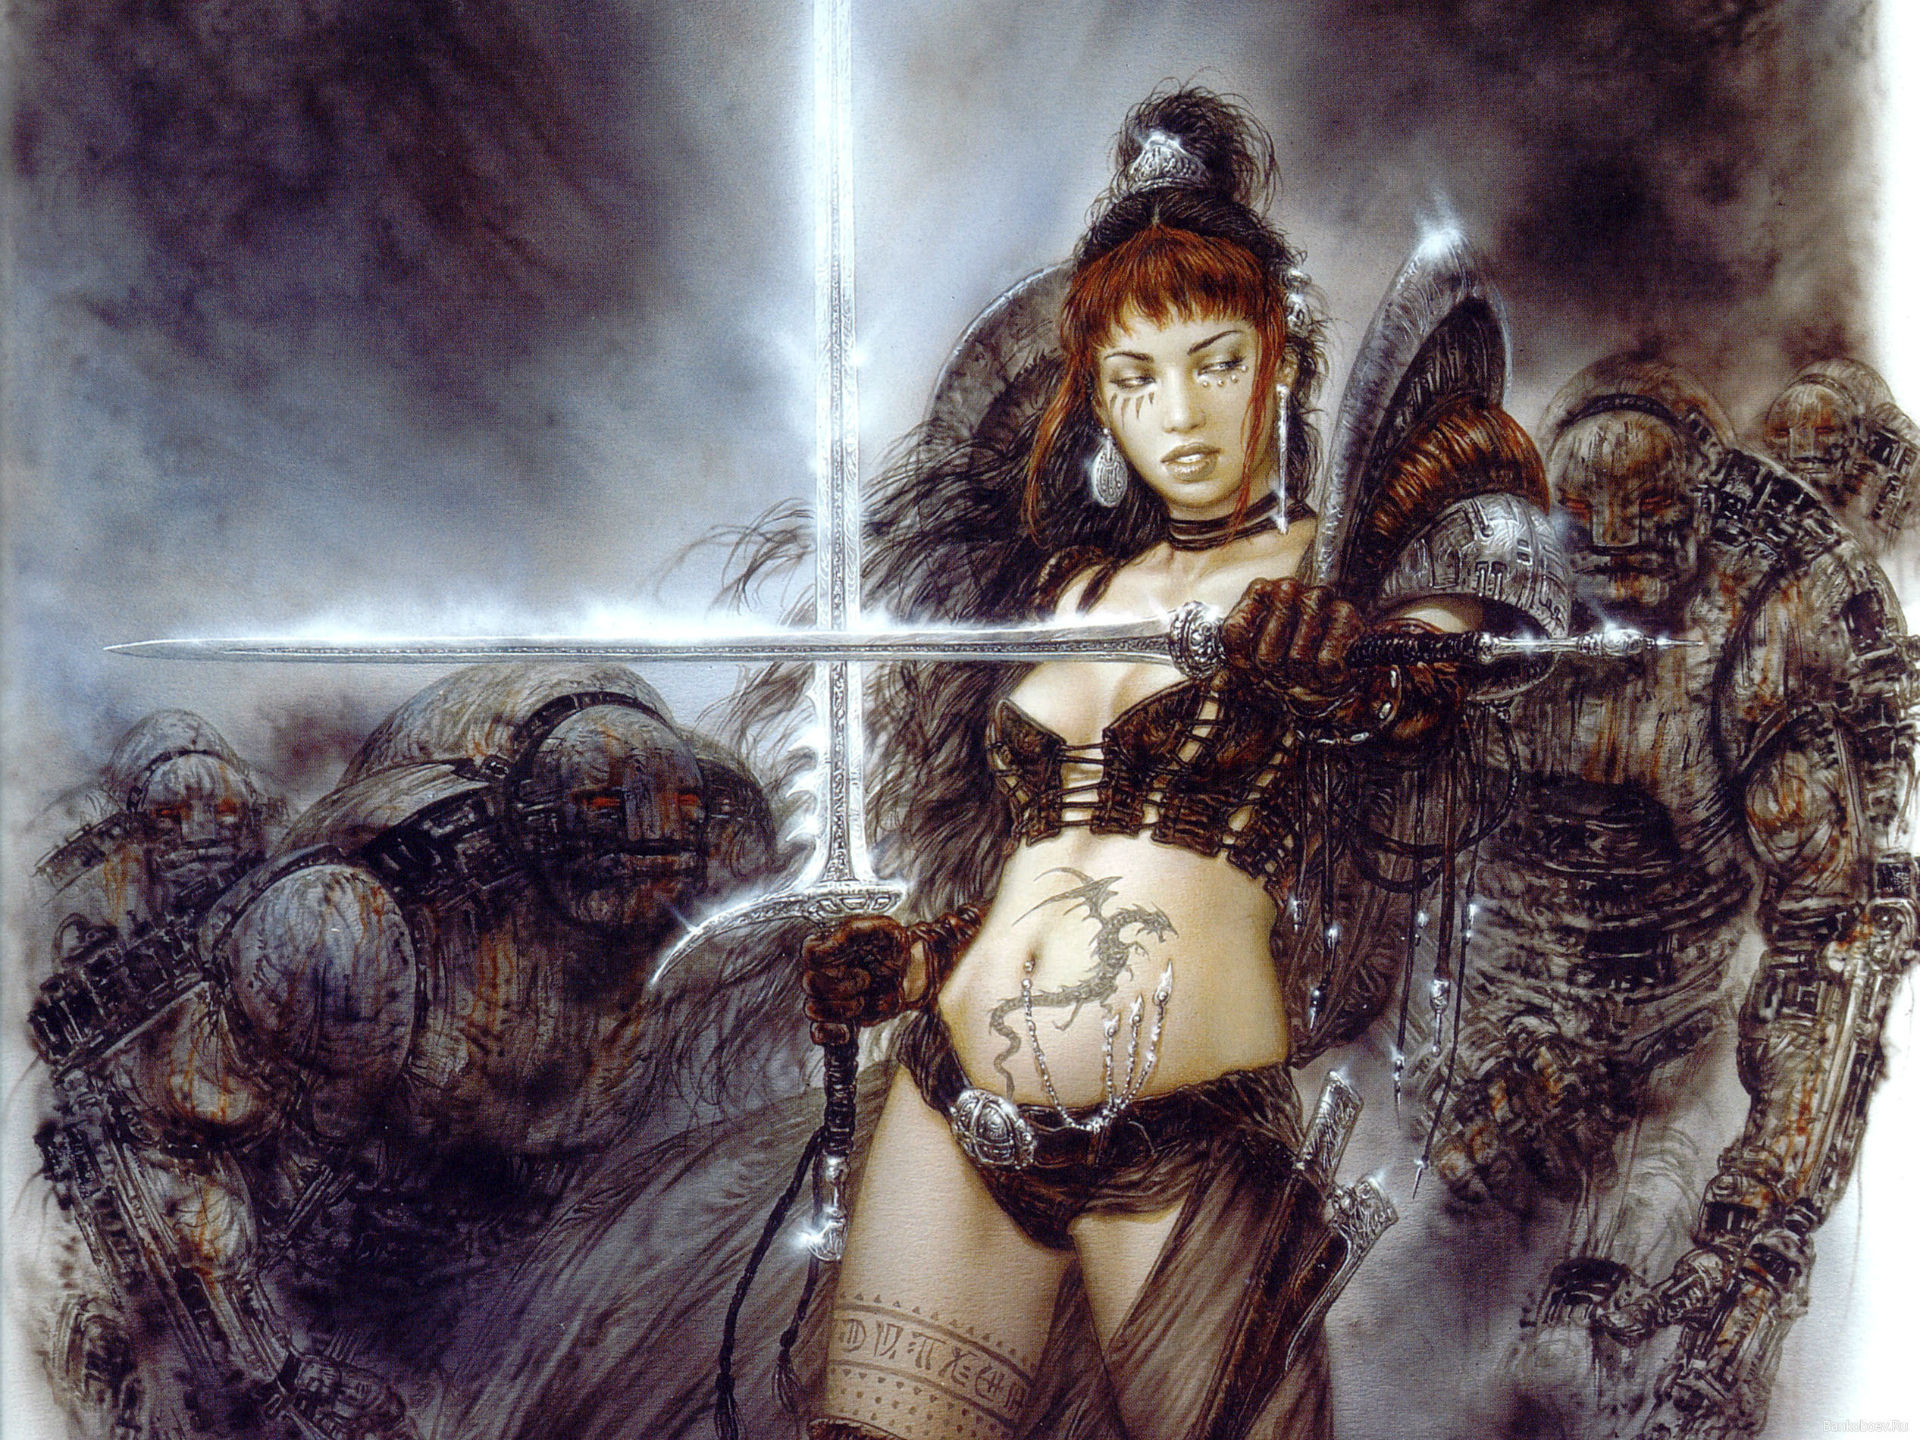 Luis-Royo Royo fantasy other warriors females weapons swords other wallpaper      22417   WallpaperUP